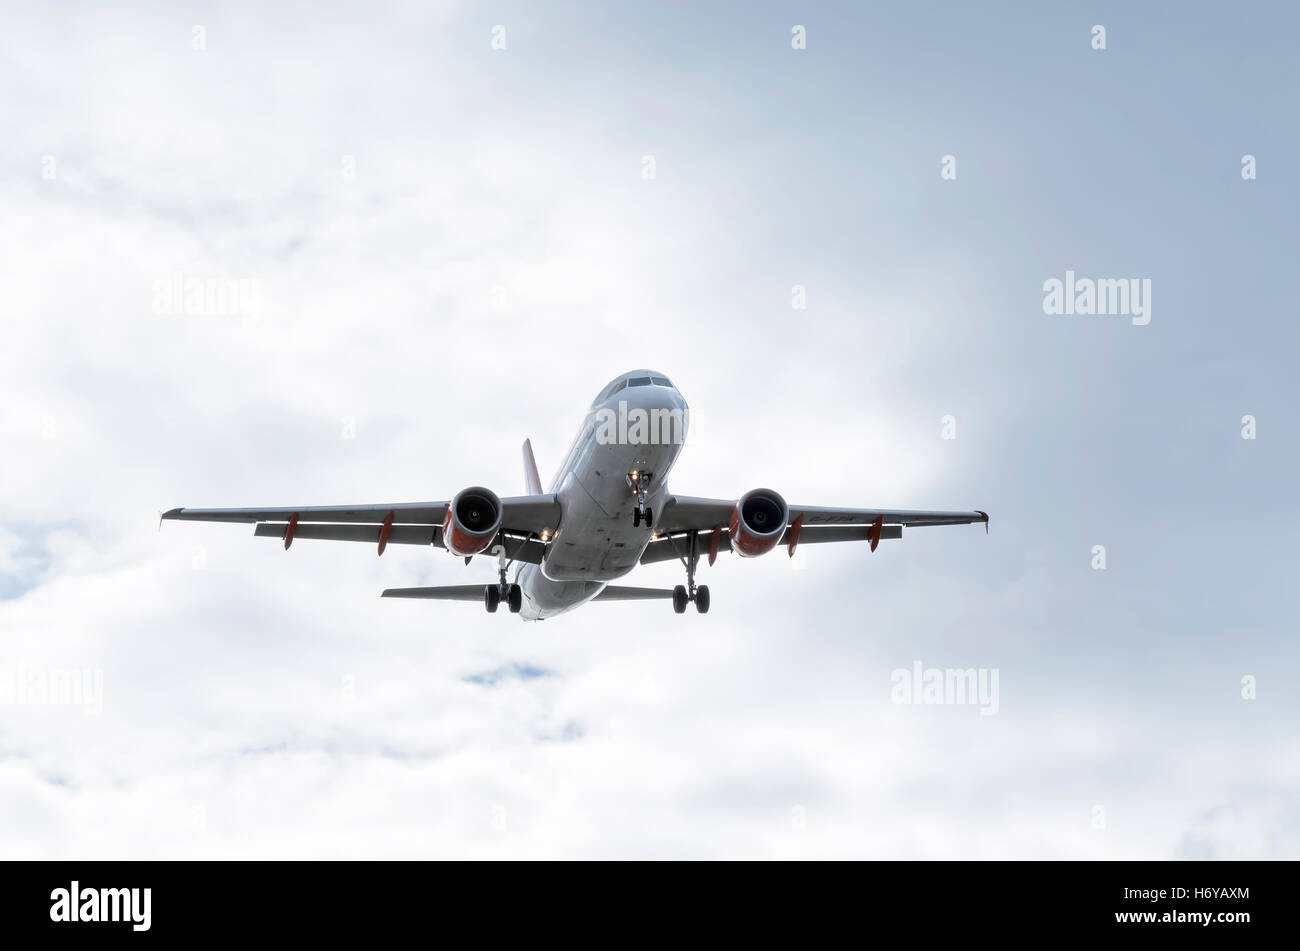 Aircraft -Airbus A319-, of -EasyJet- airline, landing in Madrid-Barajas (Adolfo Suarez) airport (Spain) - Stock Image